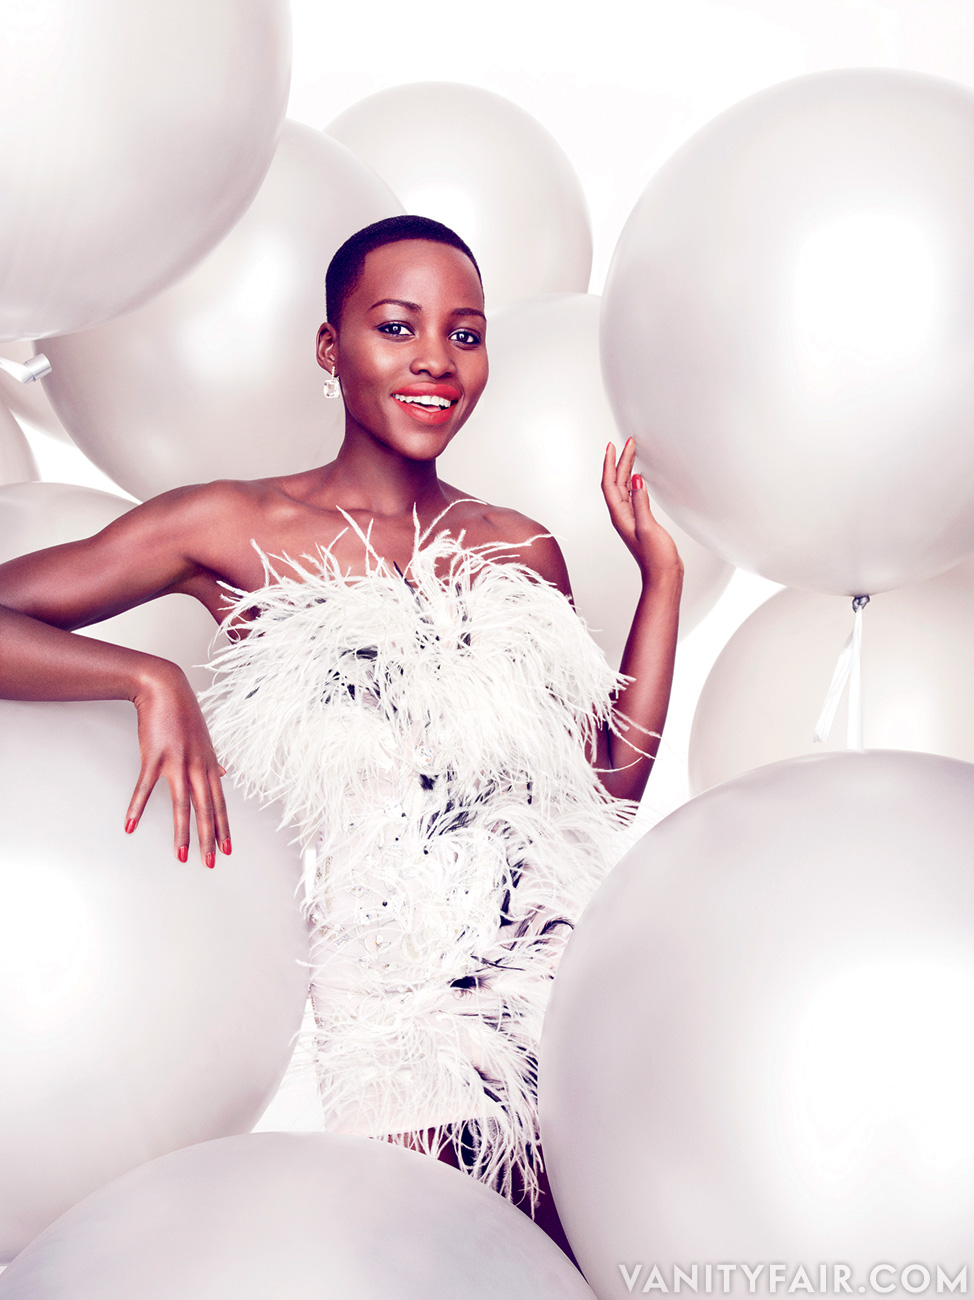 Lupita-Nyong'O-for-Vanity-Fair-February-2014.jpg